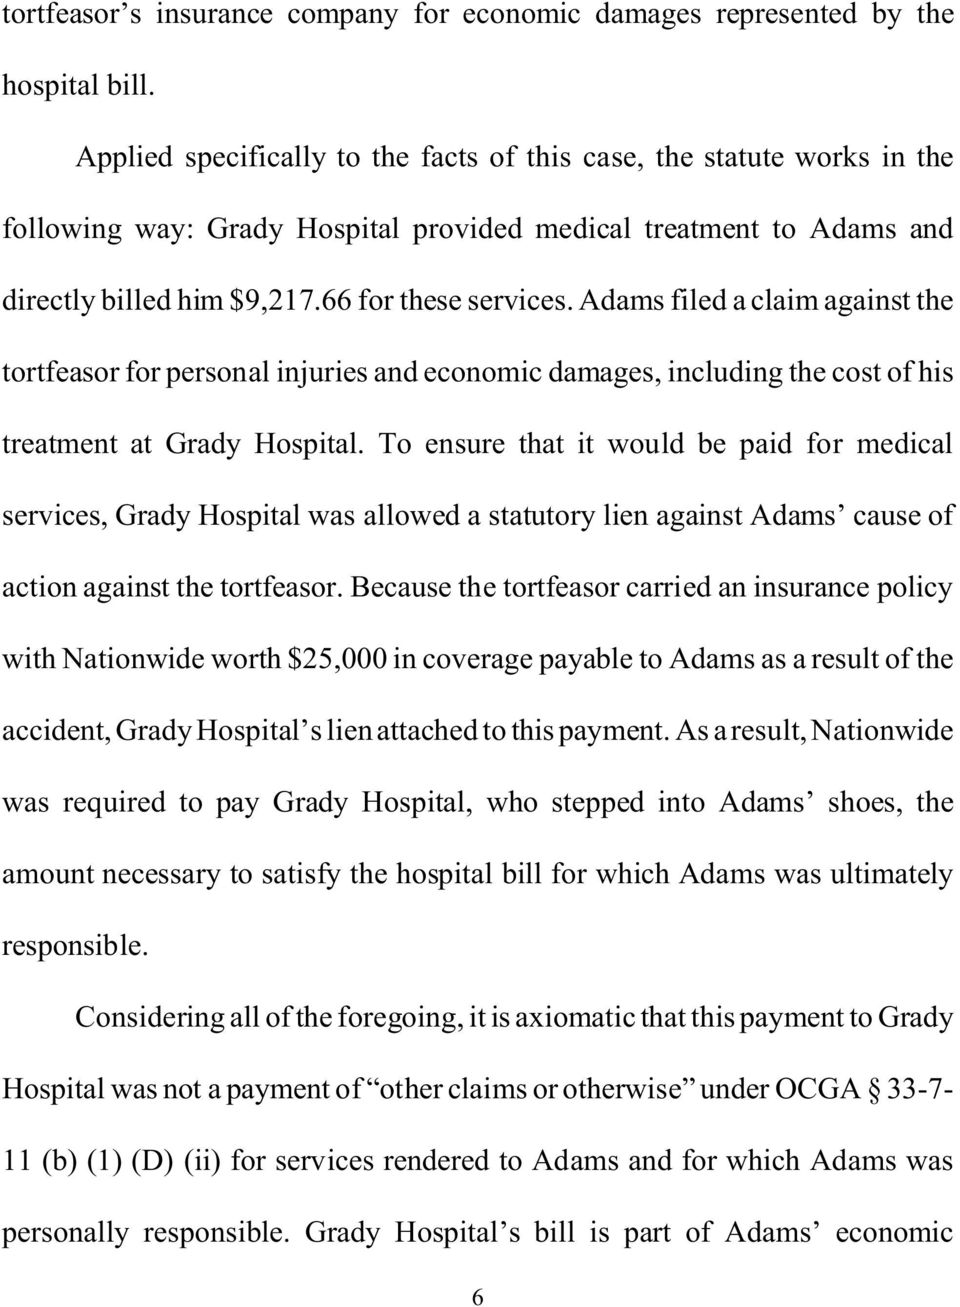 Adams filed a claim against the tortfeasor for personal injuries and economic damages, including the cost of his treatment at Grady Hospital.